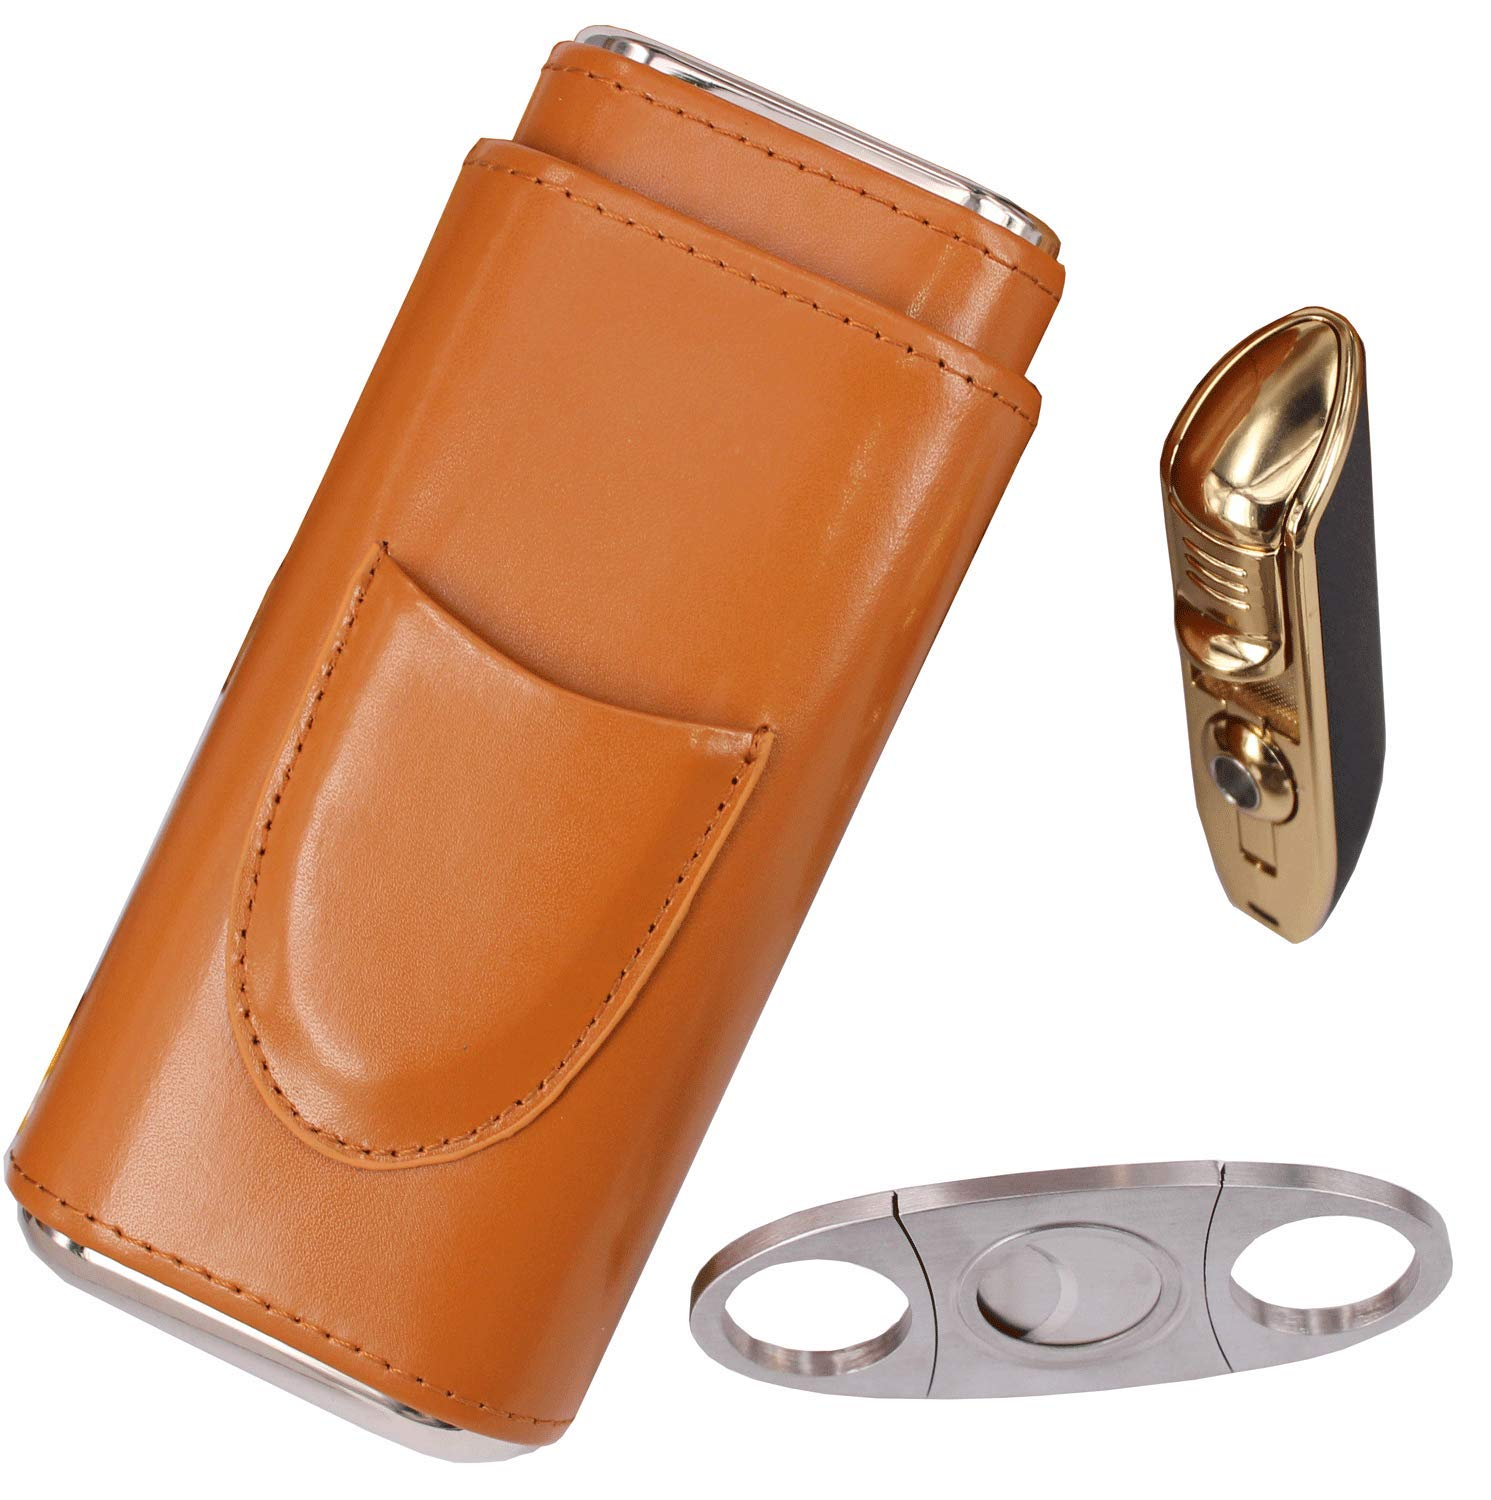 Amazon.com: AMANCY Classy Cigar Case with Lighter and Cutter Great Gift Set: Home & Kitchen